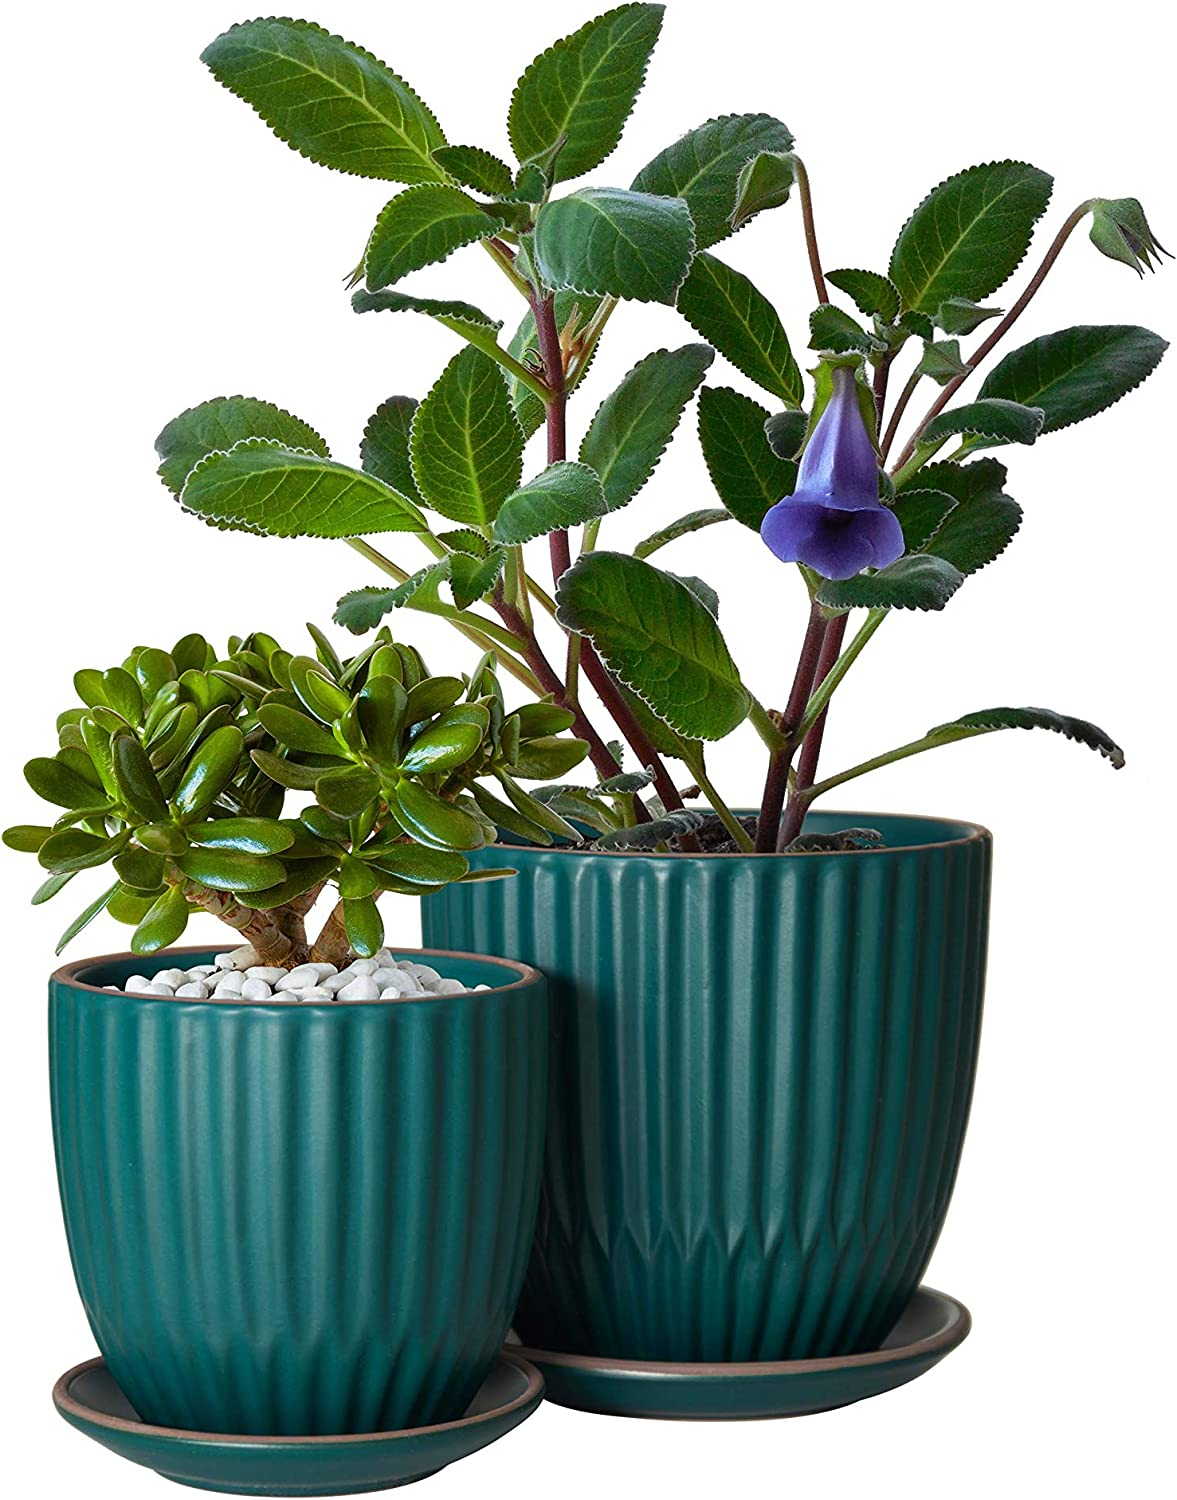 Set Of 2 Stoneware Planter Pot Ceramic Pot With Drainage Hole And Saucers 4 Inch 6 Inch Teal Blue Kitchen Dining